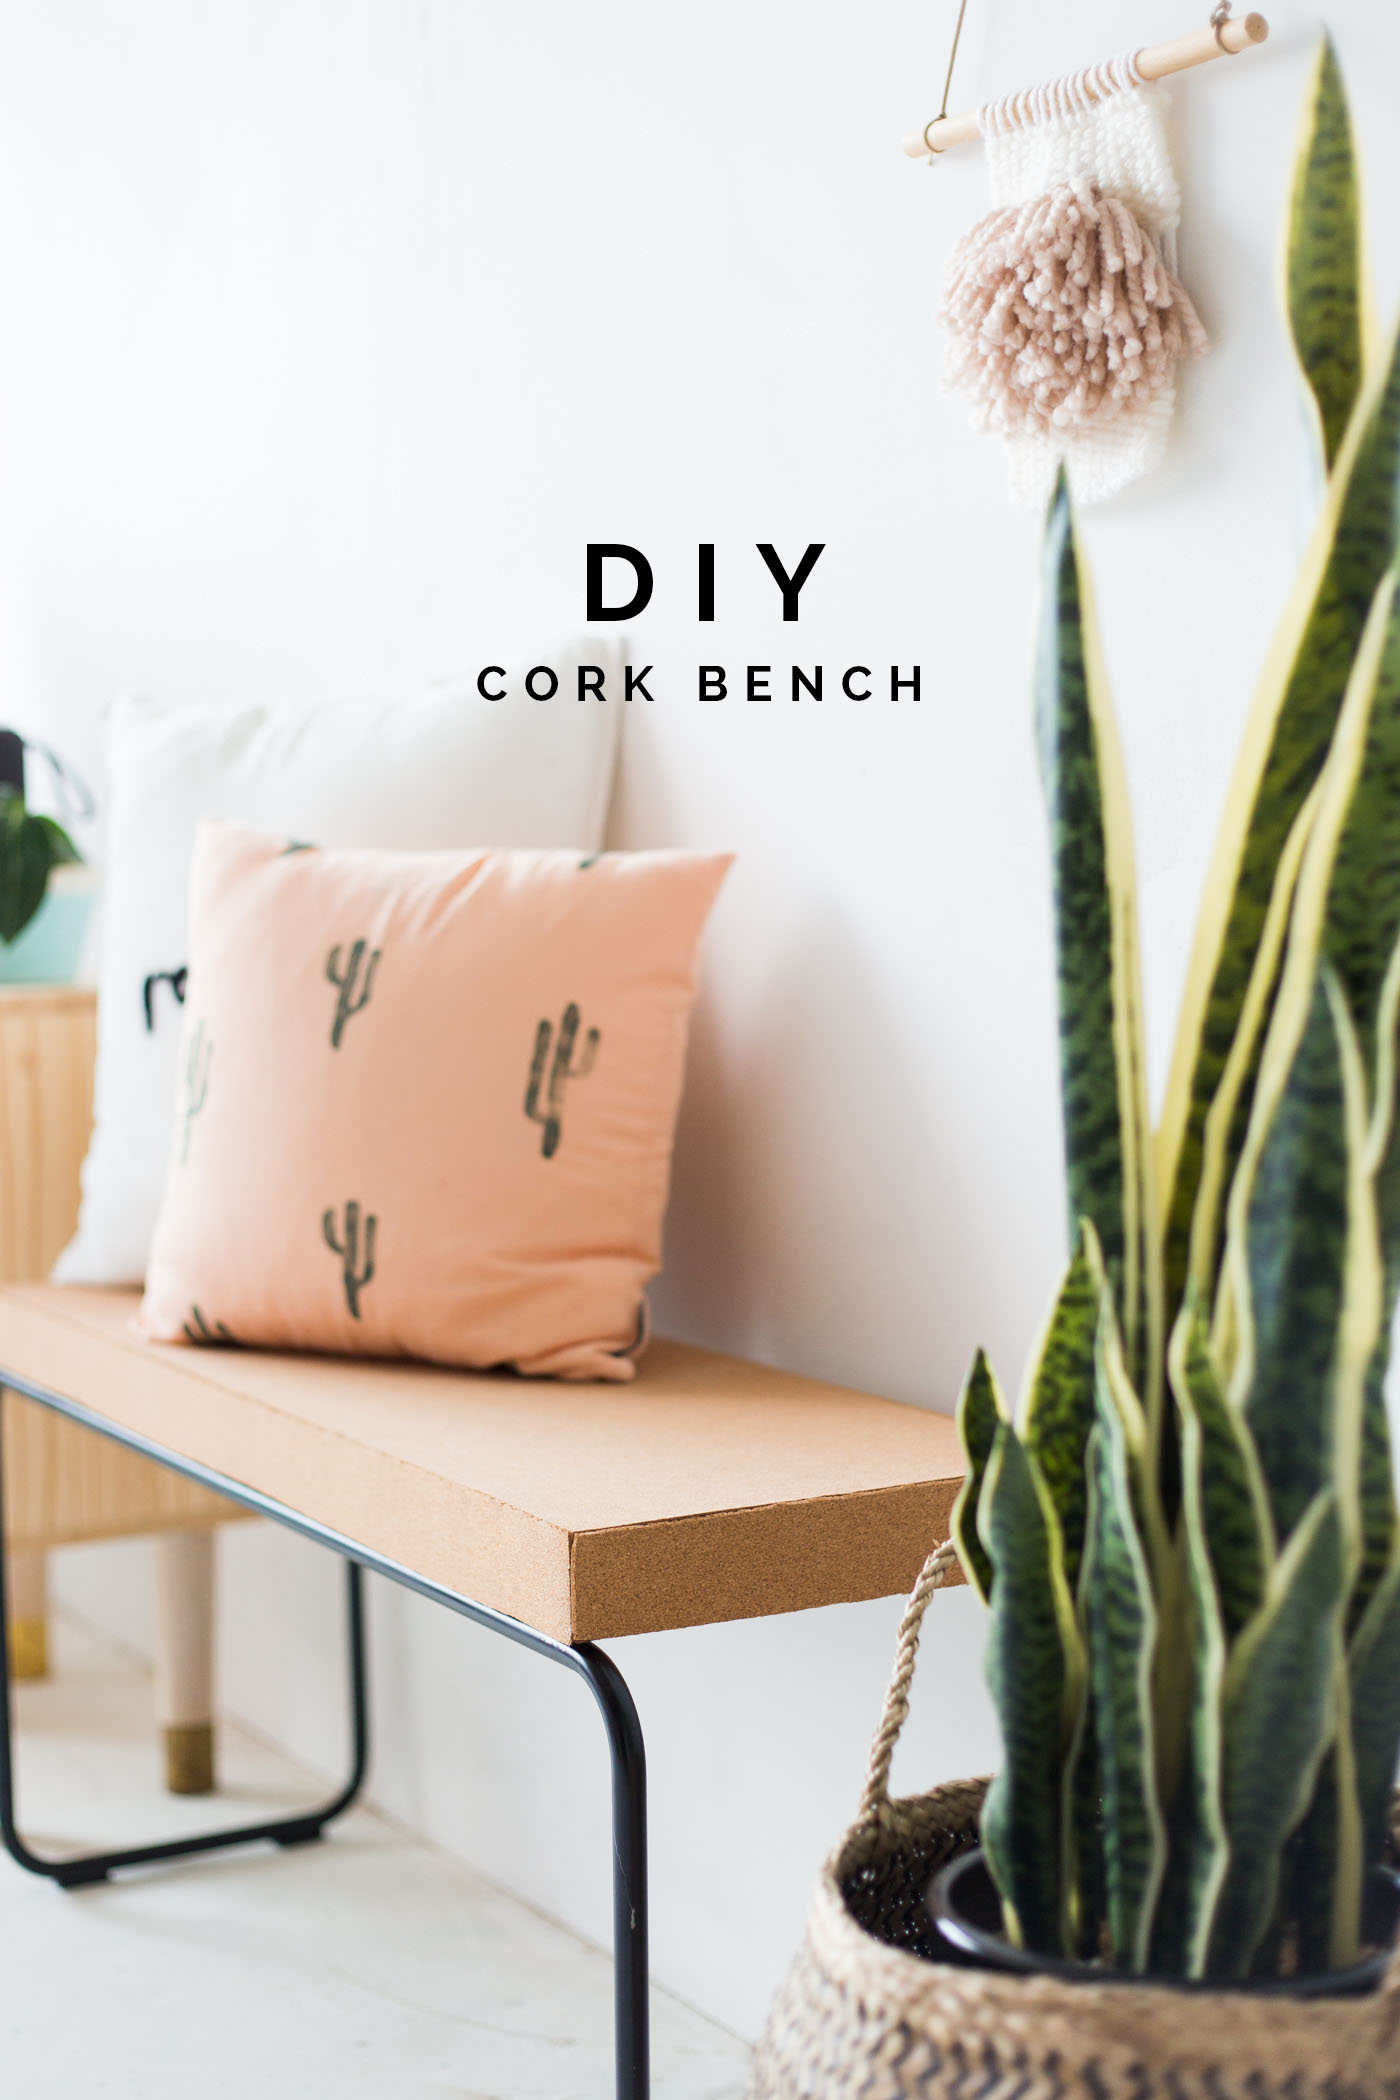 DIY Cork Bench @fallfordiy